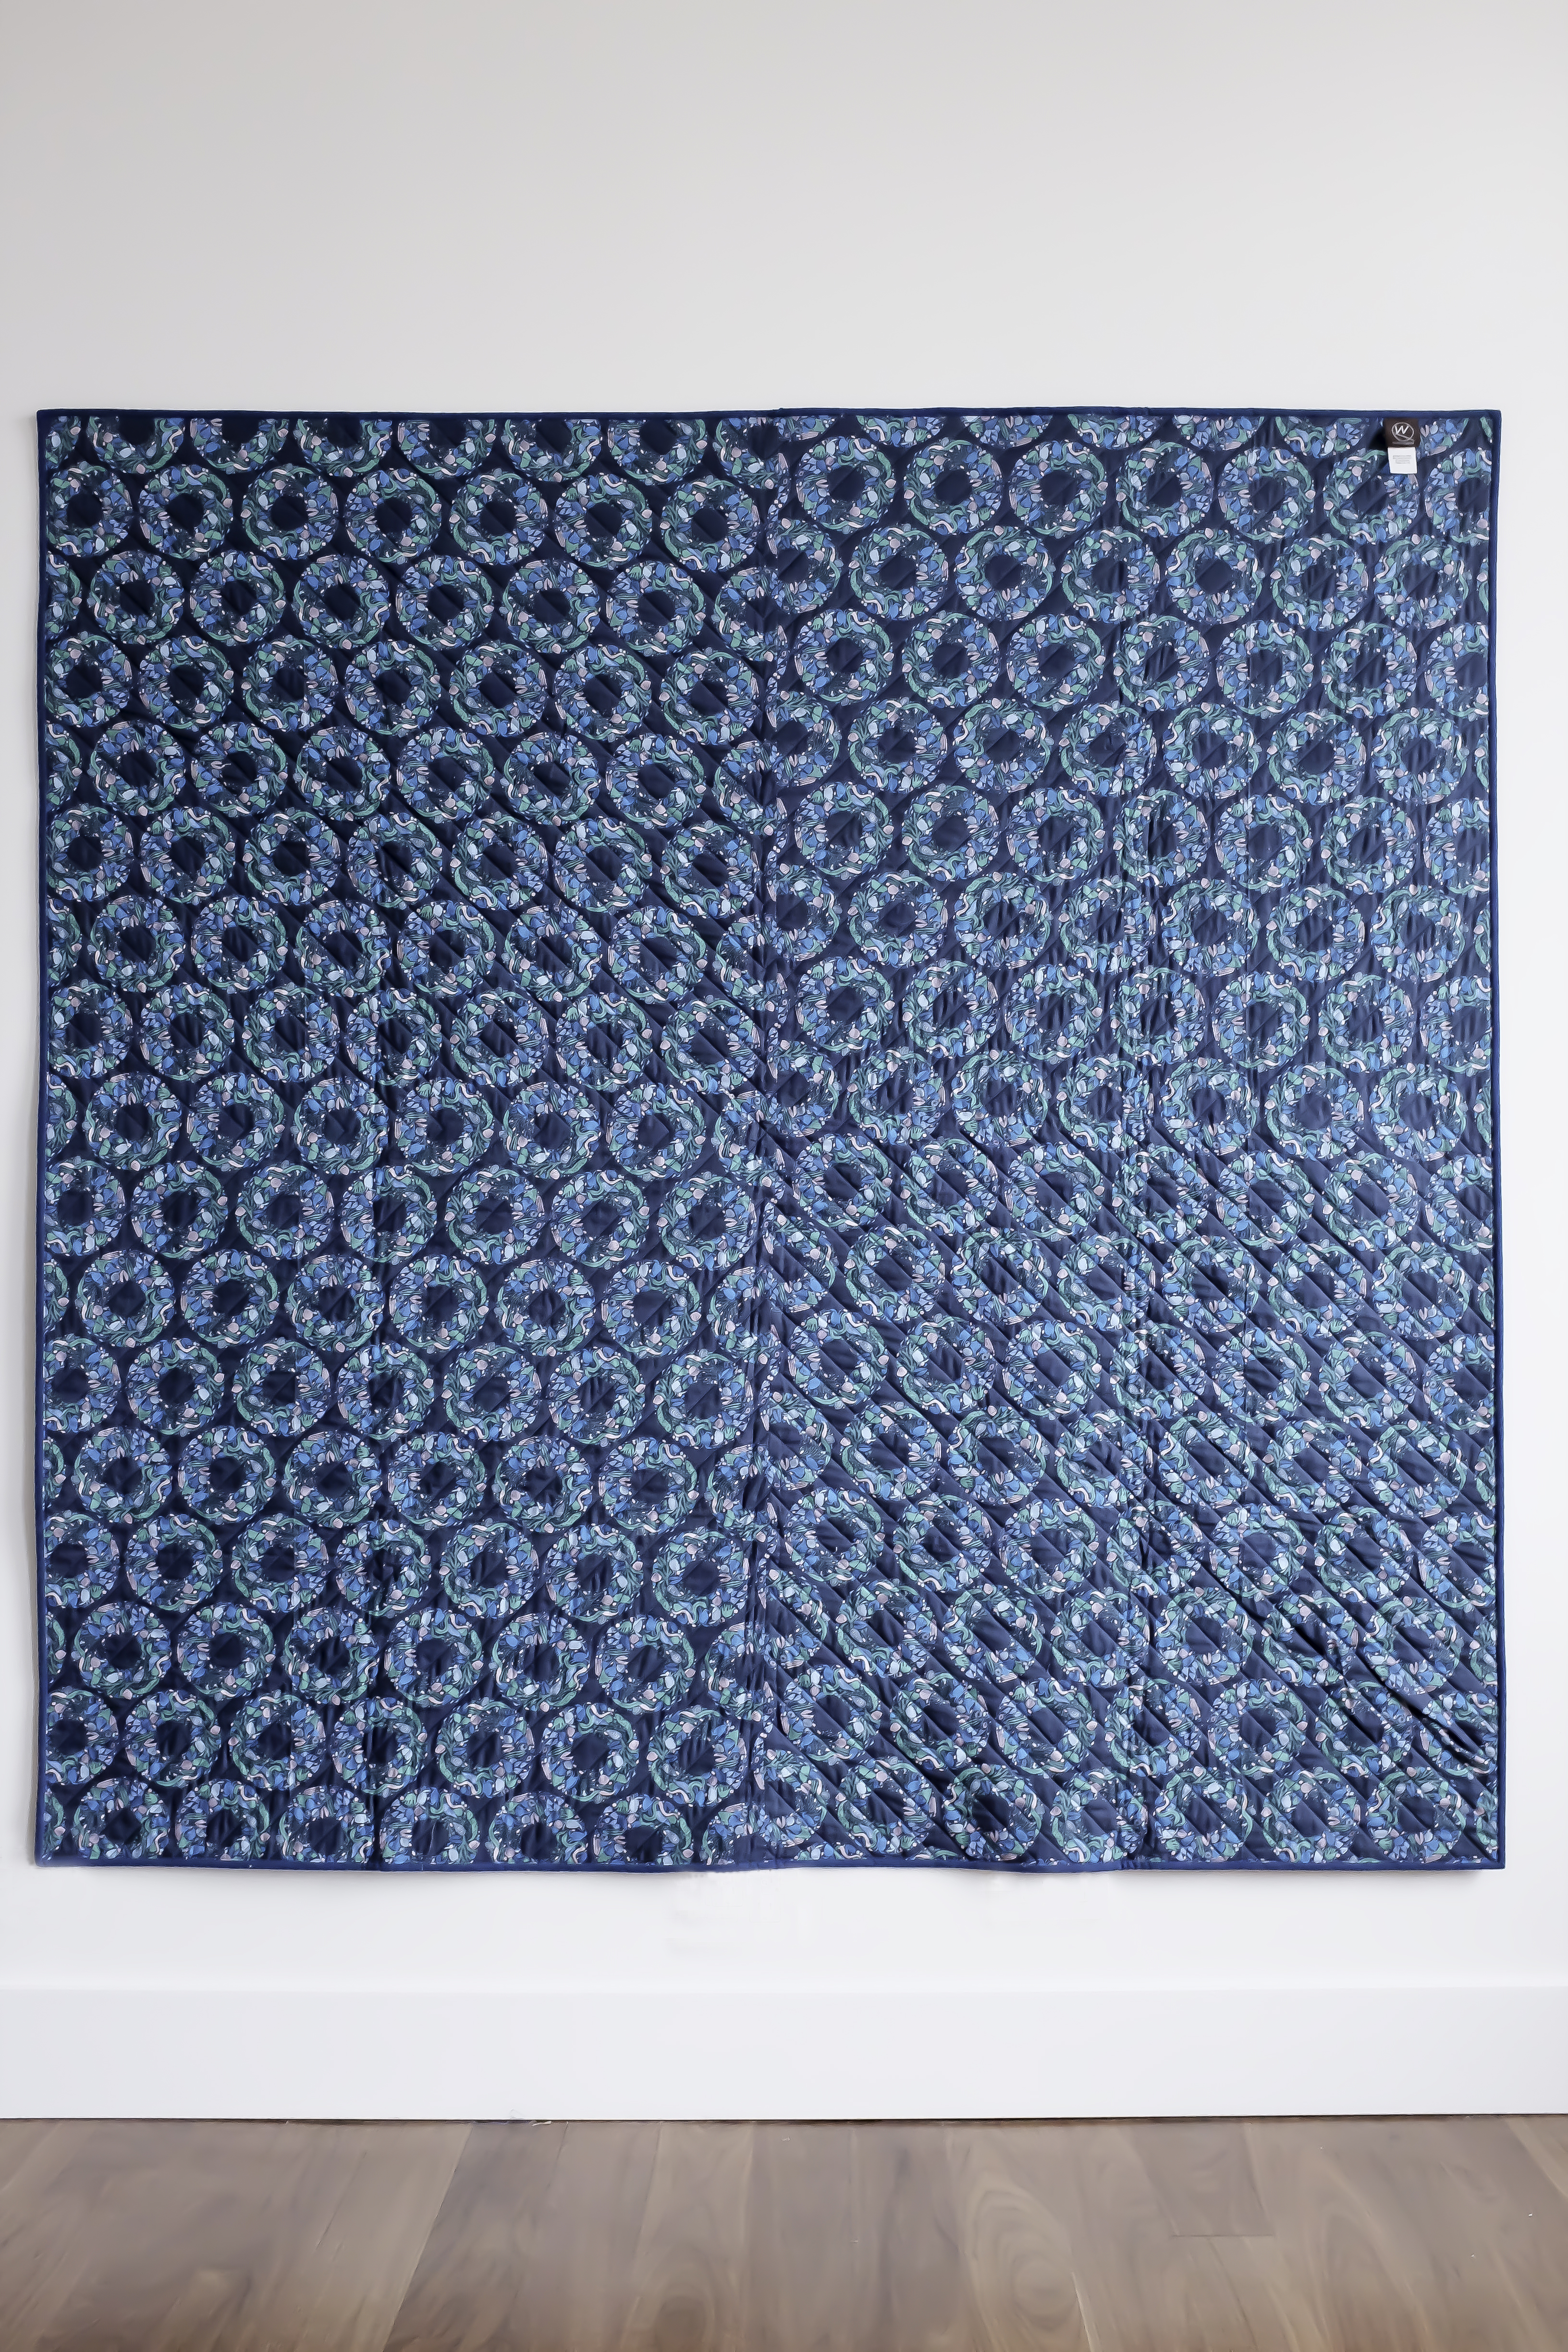 image of Seagrass quilt